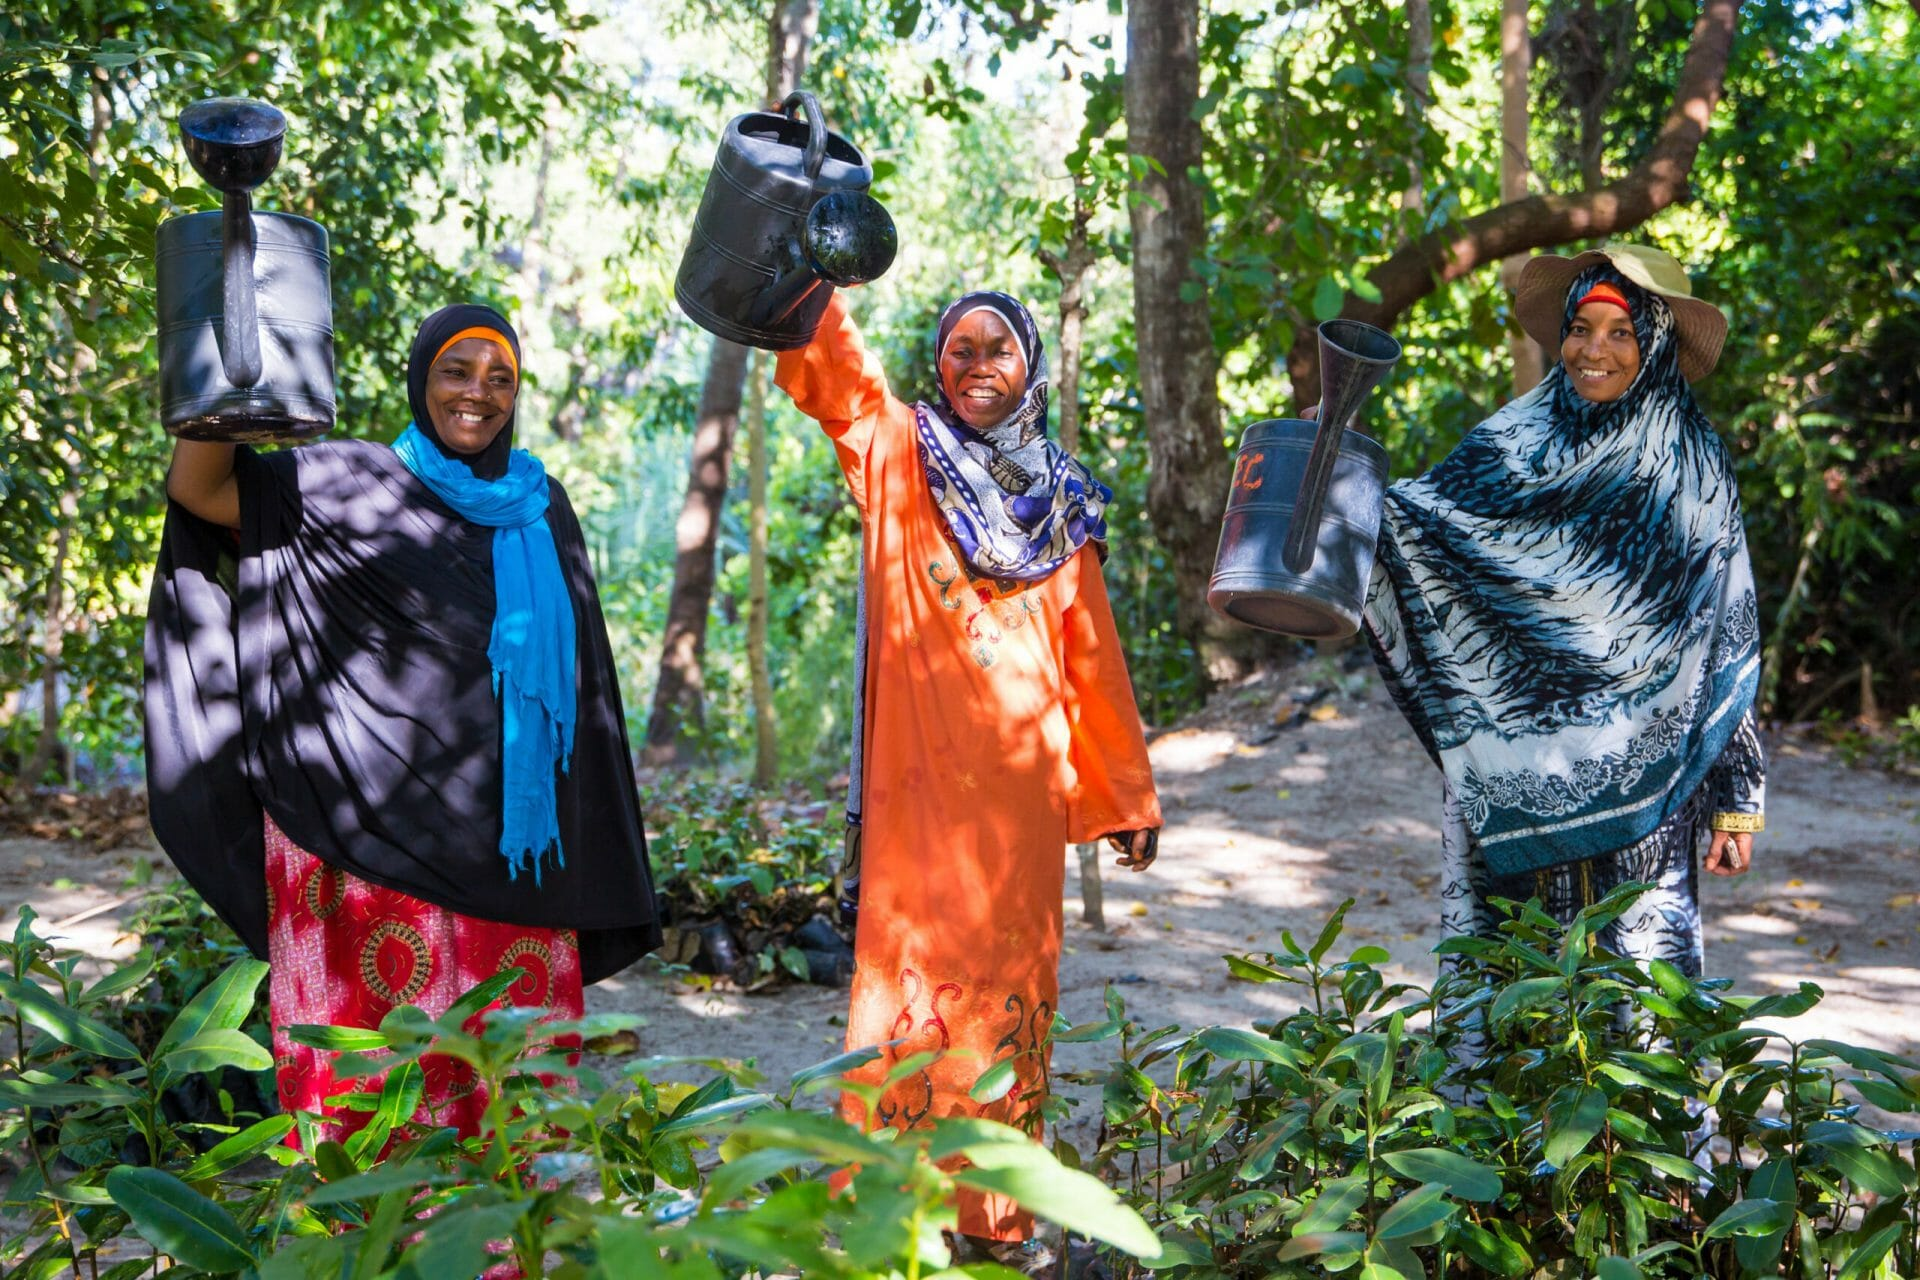 Women smile at the camera as they raise their watering cans in the air.